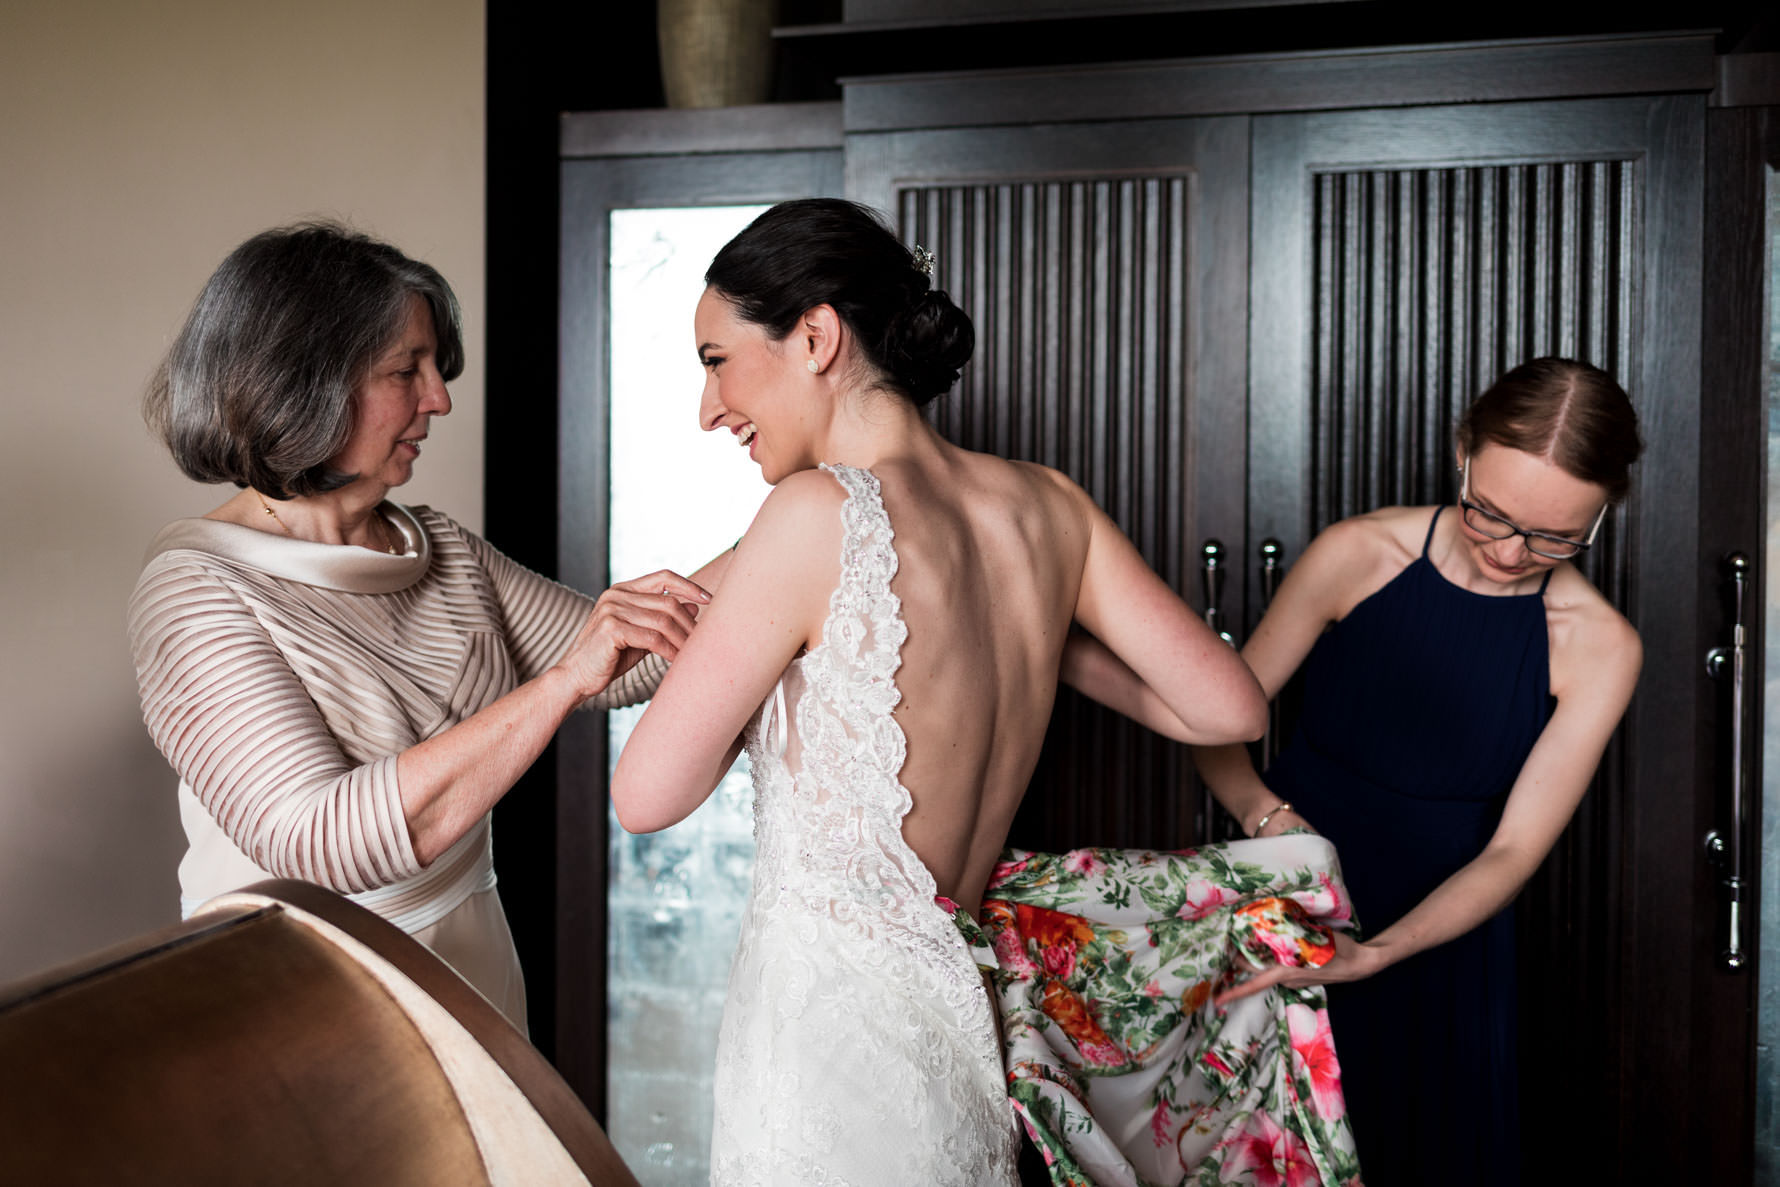 Mother of the bride helping bride to put on wedding dress